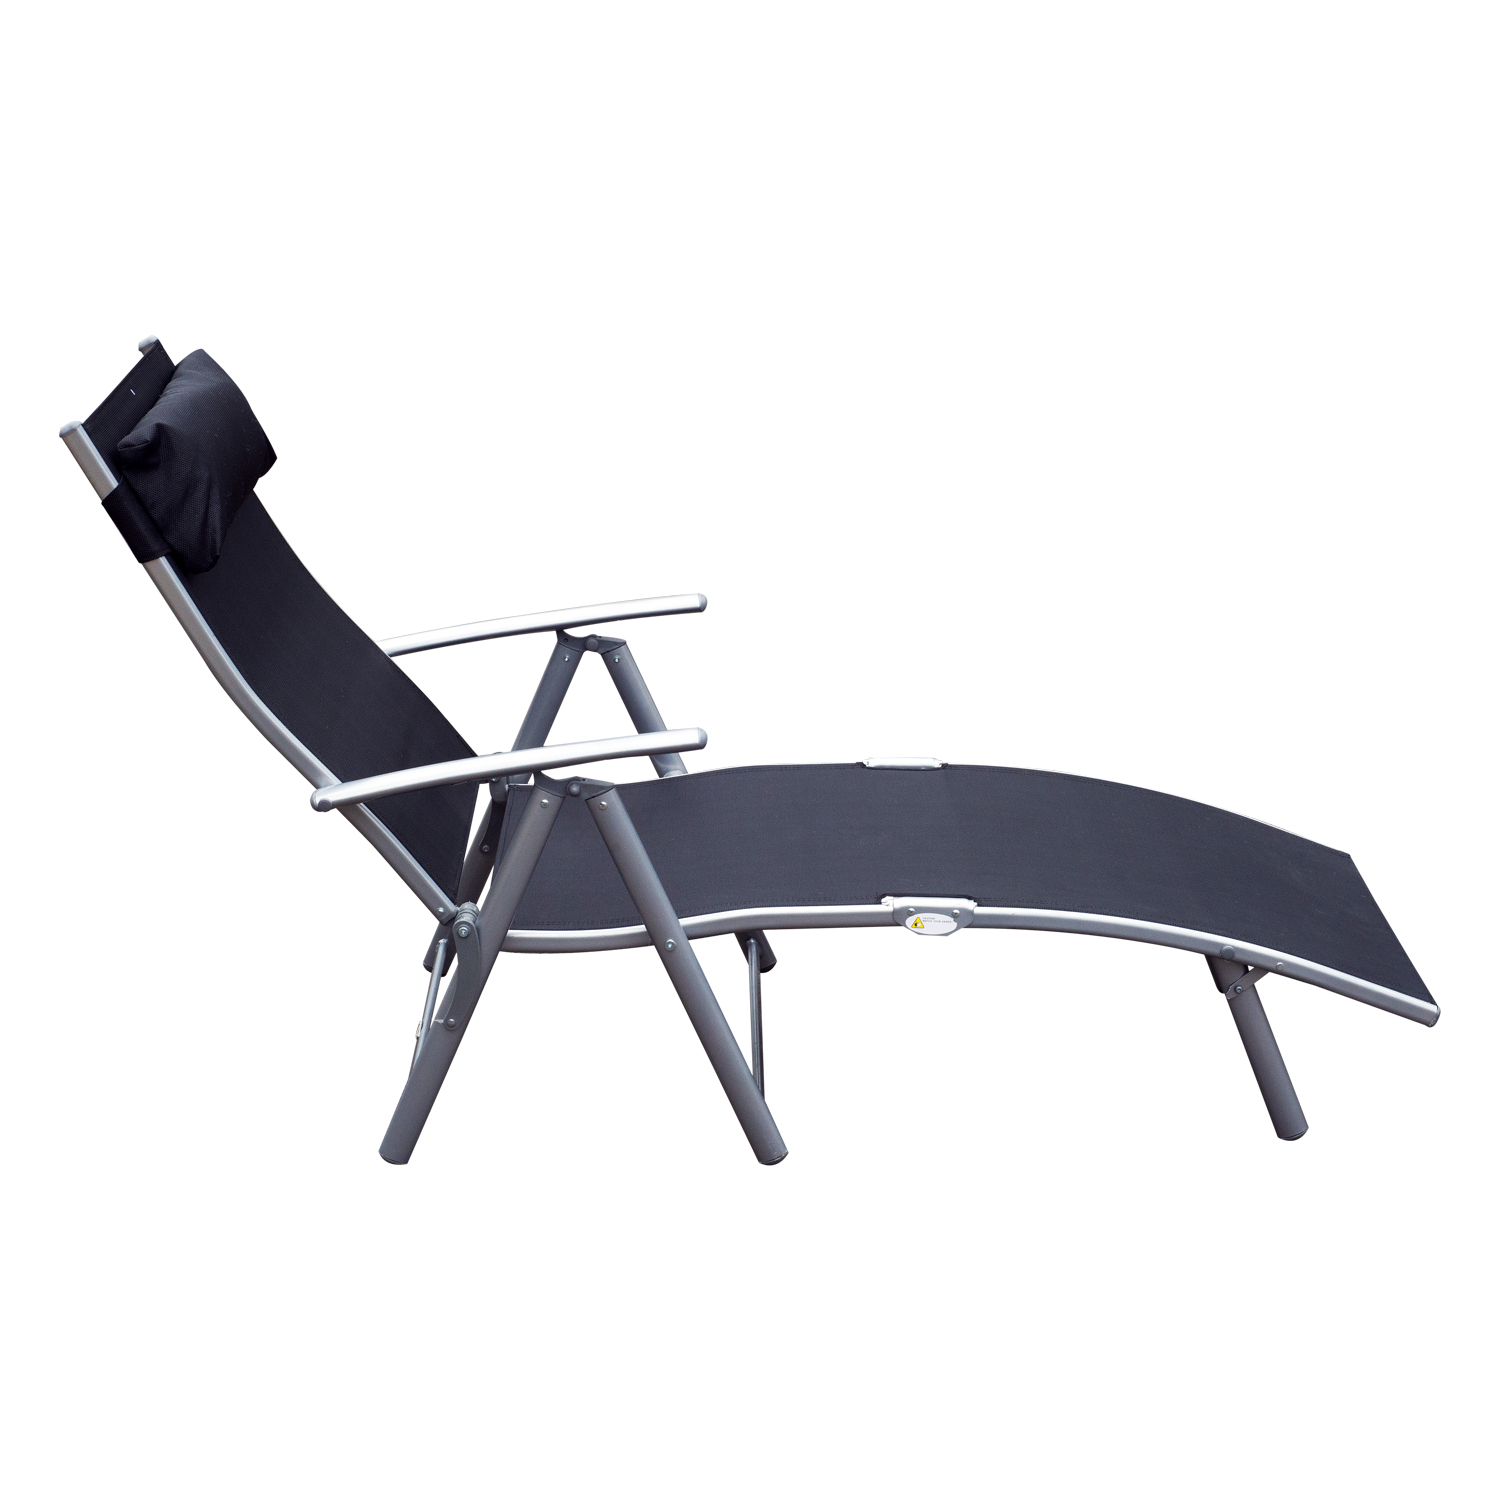 Patio Folding Chairs Chaise Lounge Chair Folding Pool Beach Yard Adjustable